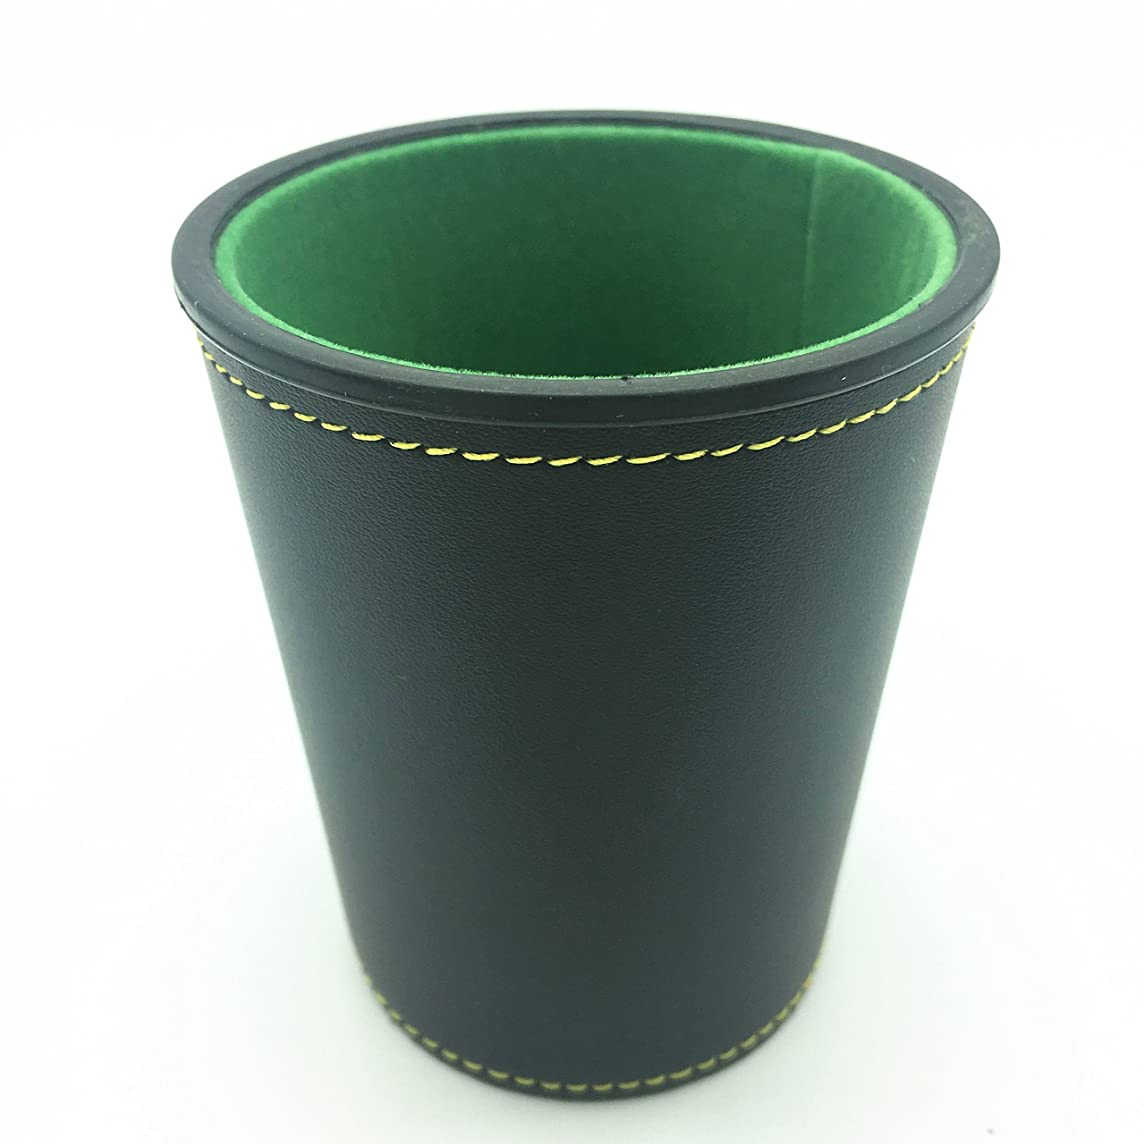 Momostar PU Leather Dice Cup with green Felt Lining, Mini 3.5